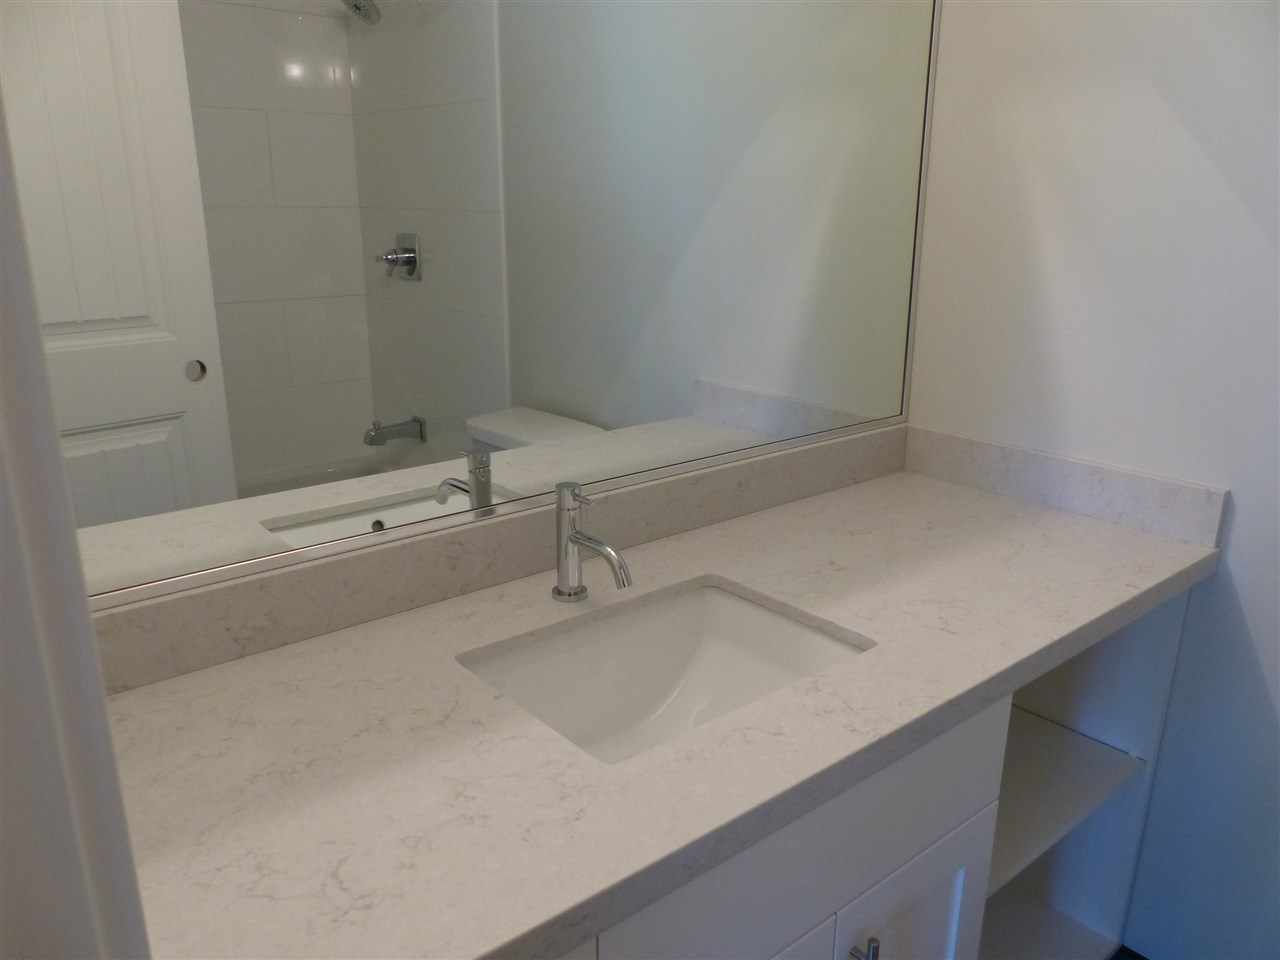 NEW Quartz Silestone Counter & Blanco Faucet